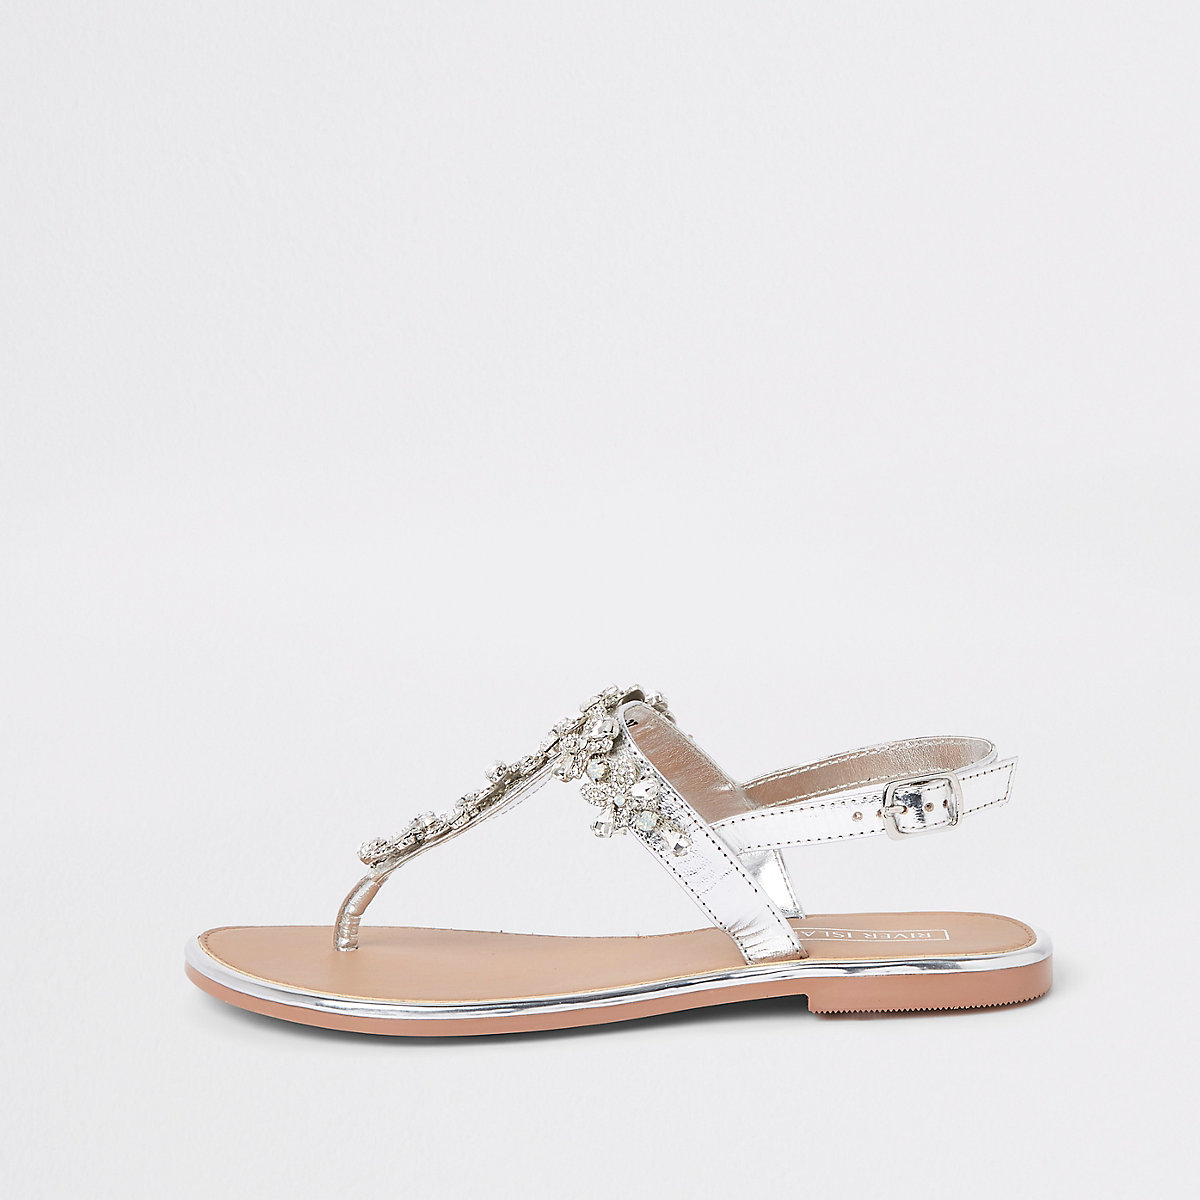 Silver leather jewel embellished flat sandals